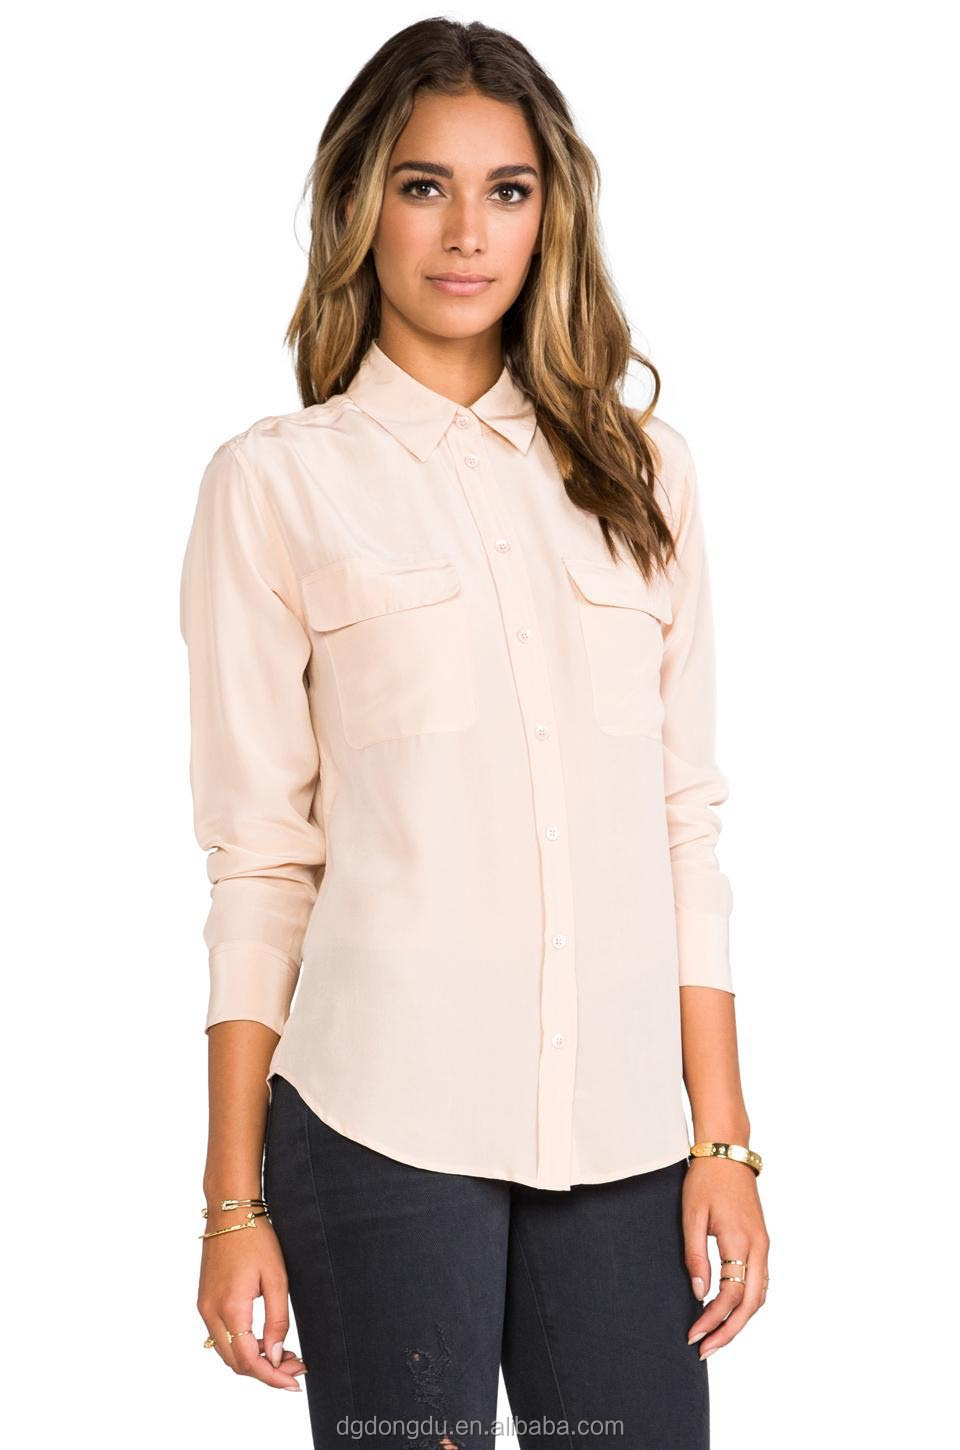 Business Casual Blouse - Blue Denim Blouses